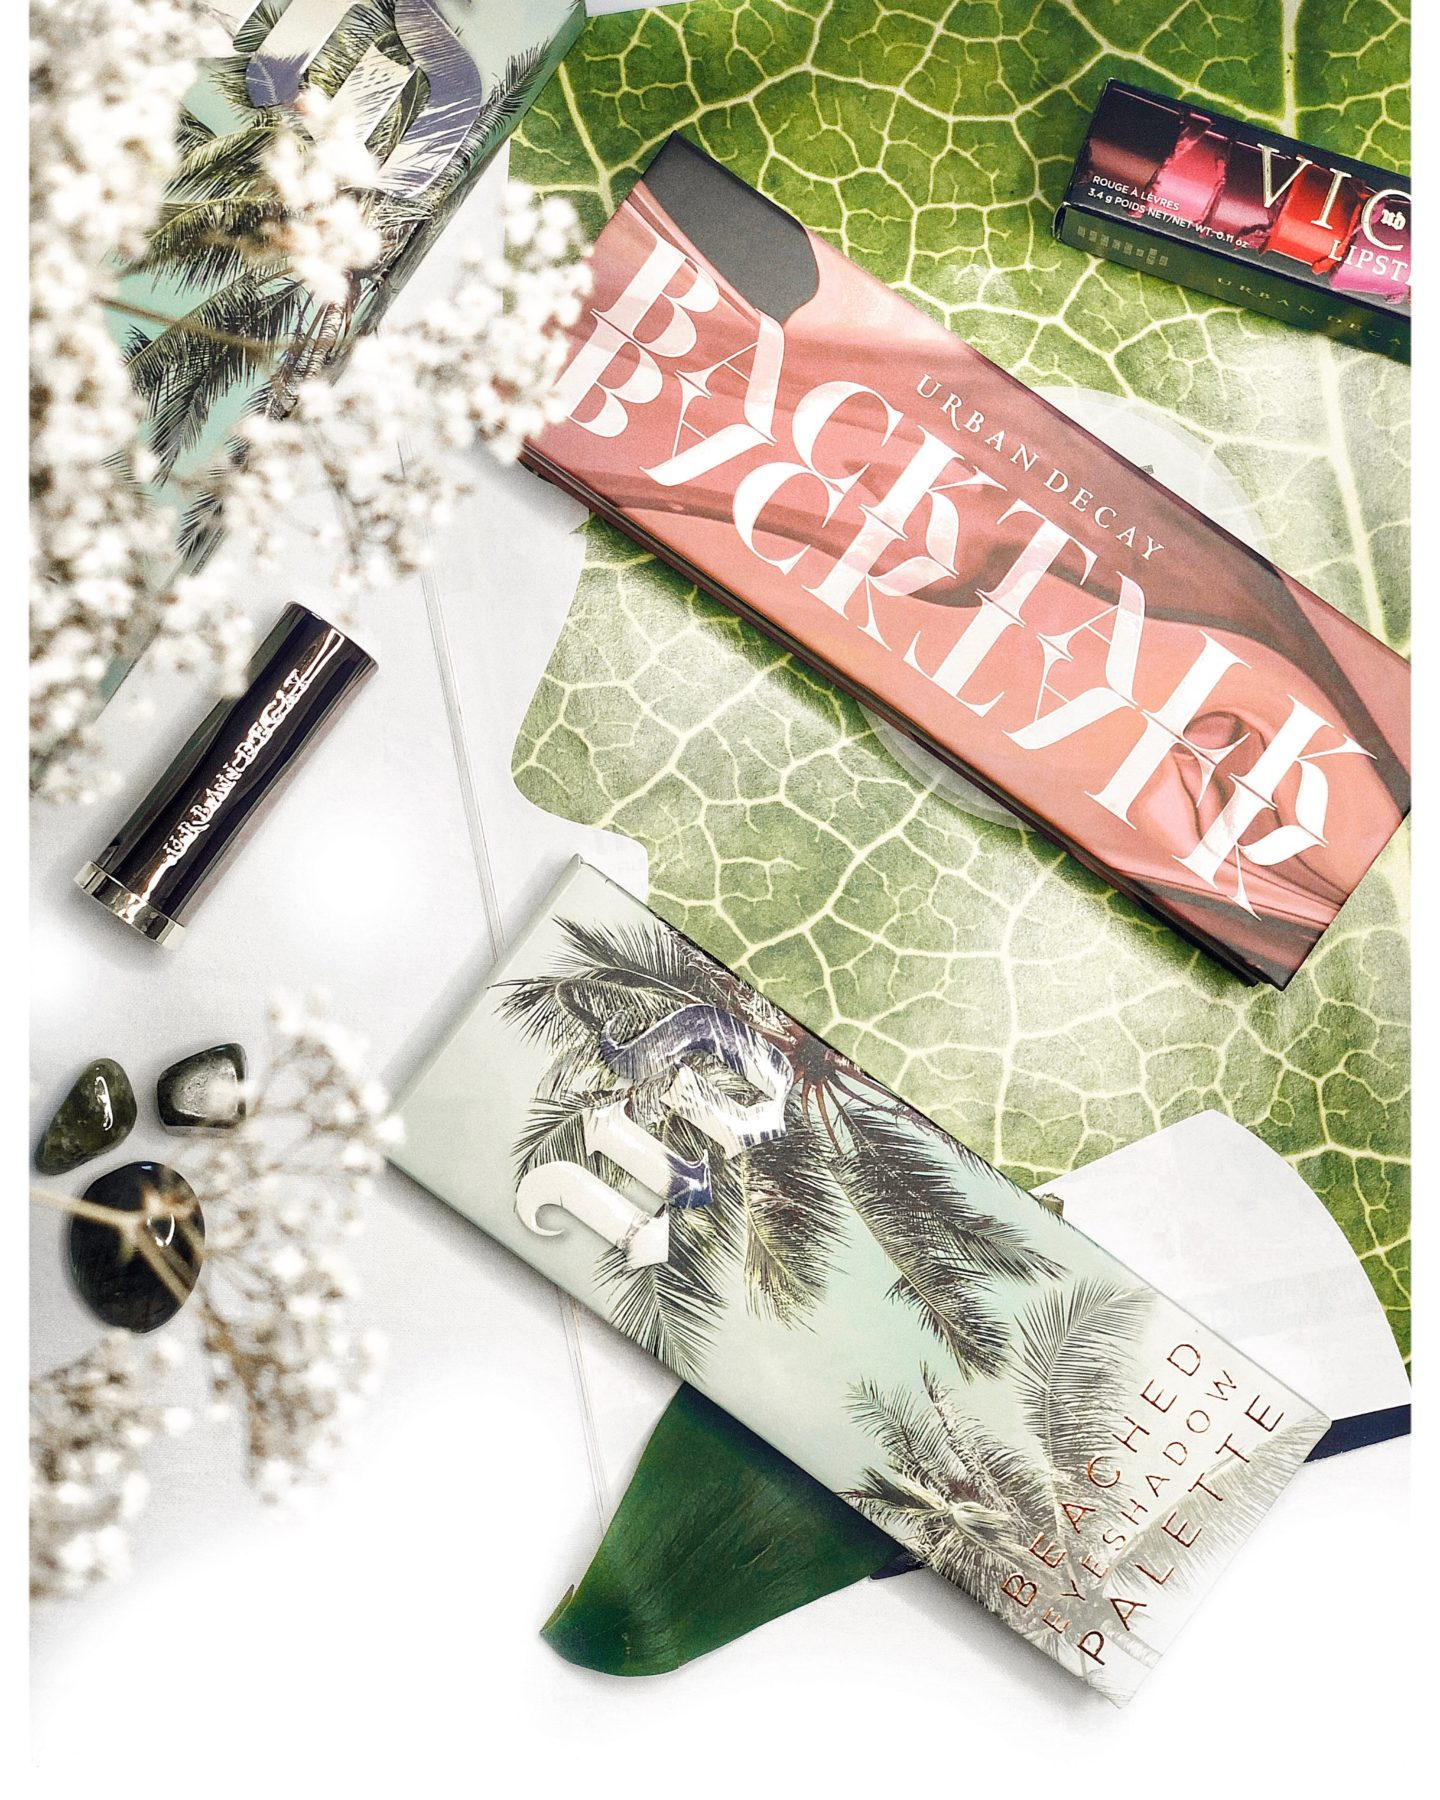 Urban Decay review